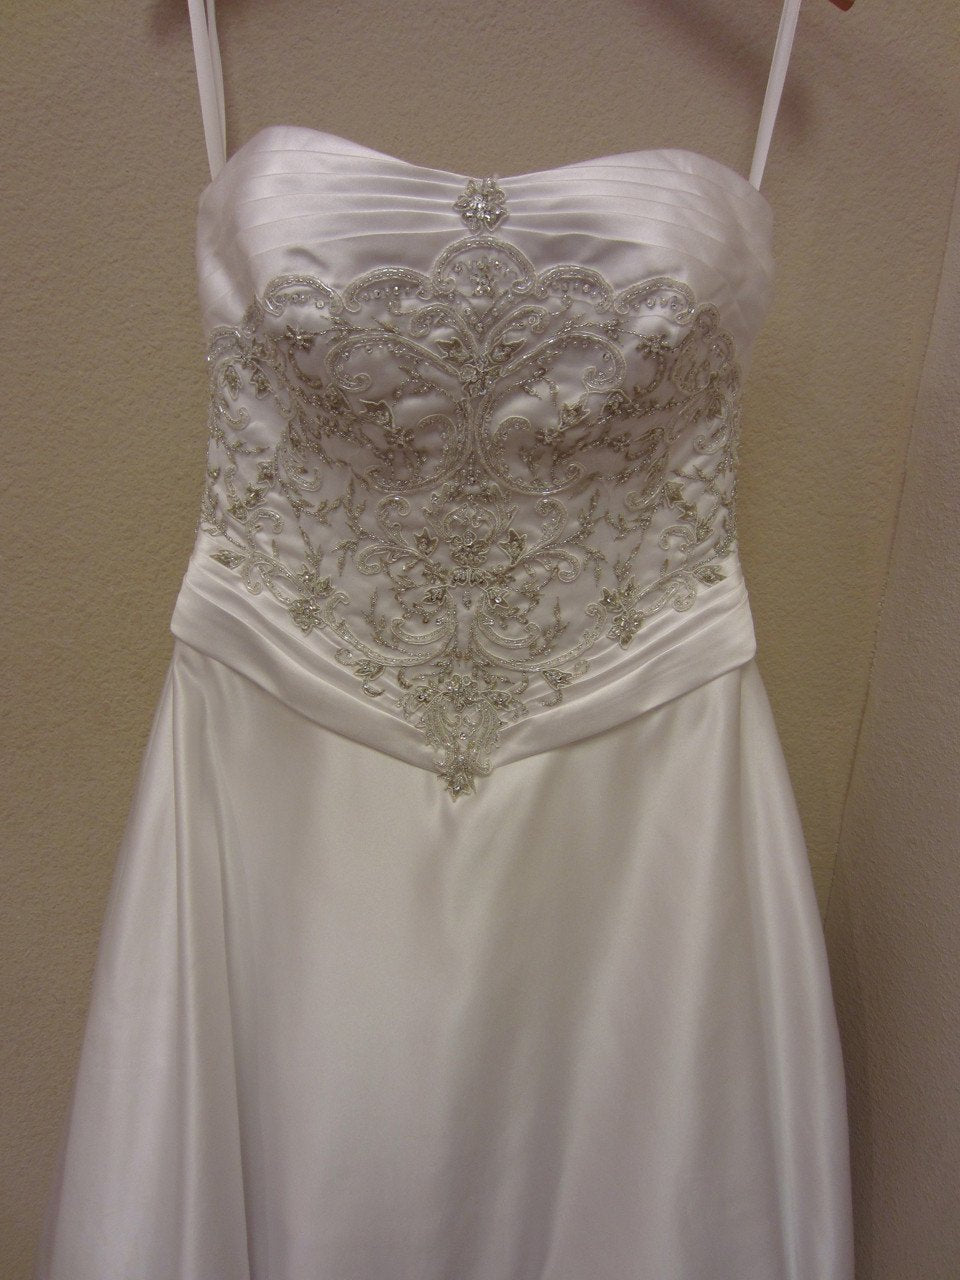 Allure 1961 White/Silver size 14 In Stock Wedding Dress - Tom's Bridal